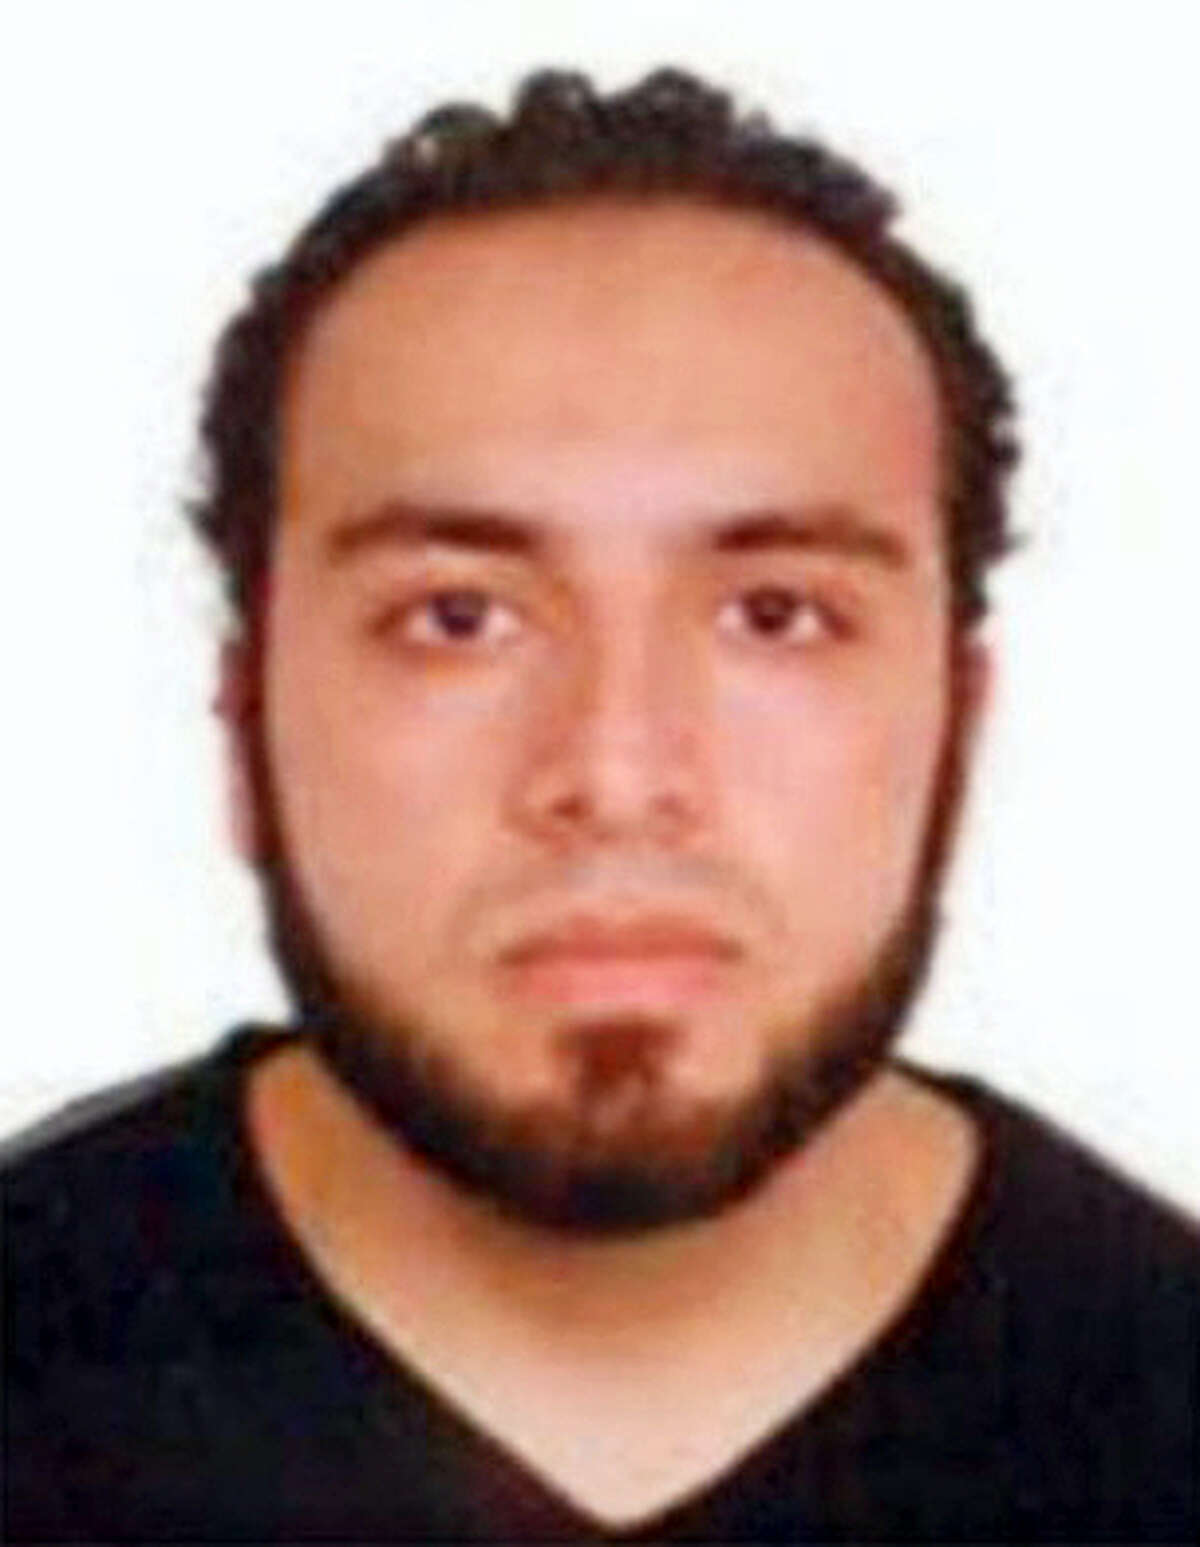 This undated photo provided by the FBI shows Ahmad Khan Rahami, wanted for questioning in the bombings that rocked a New York City neighborhood and a New Jersey shore town was taken into custody on Sept. 19, 2016 after a shootout with police in New Jersey, a law enforcement official told The Associated Press.